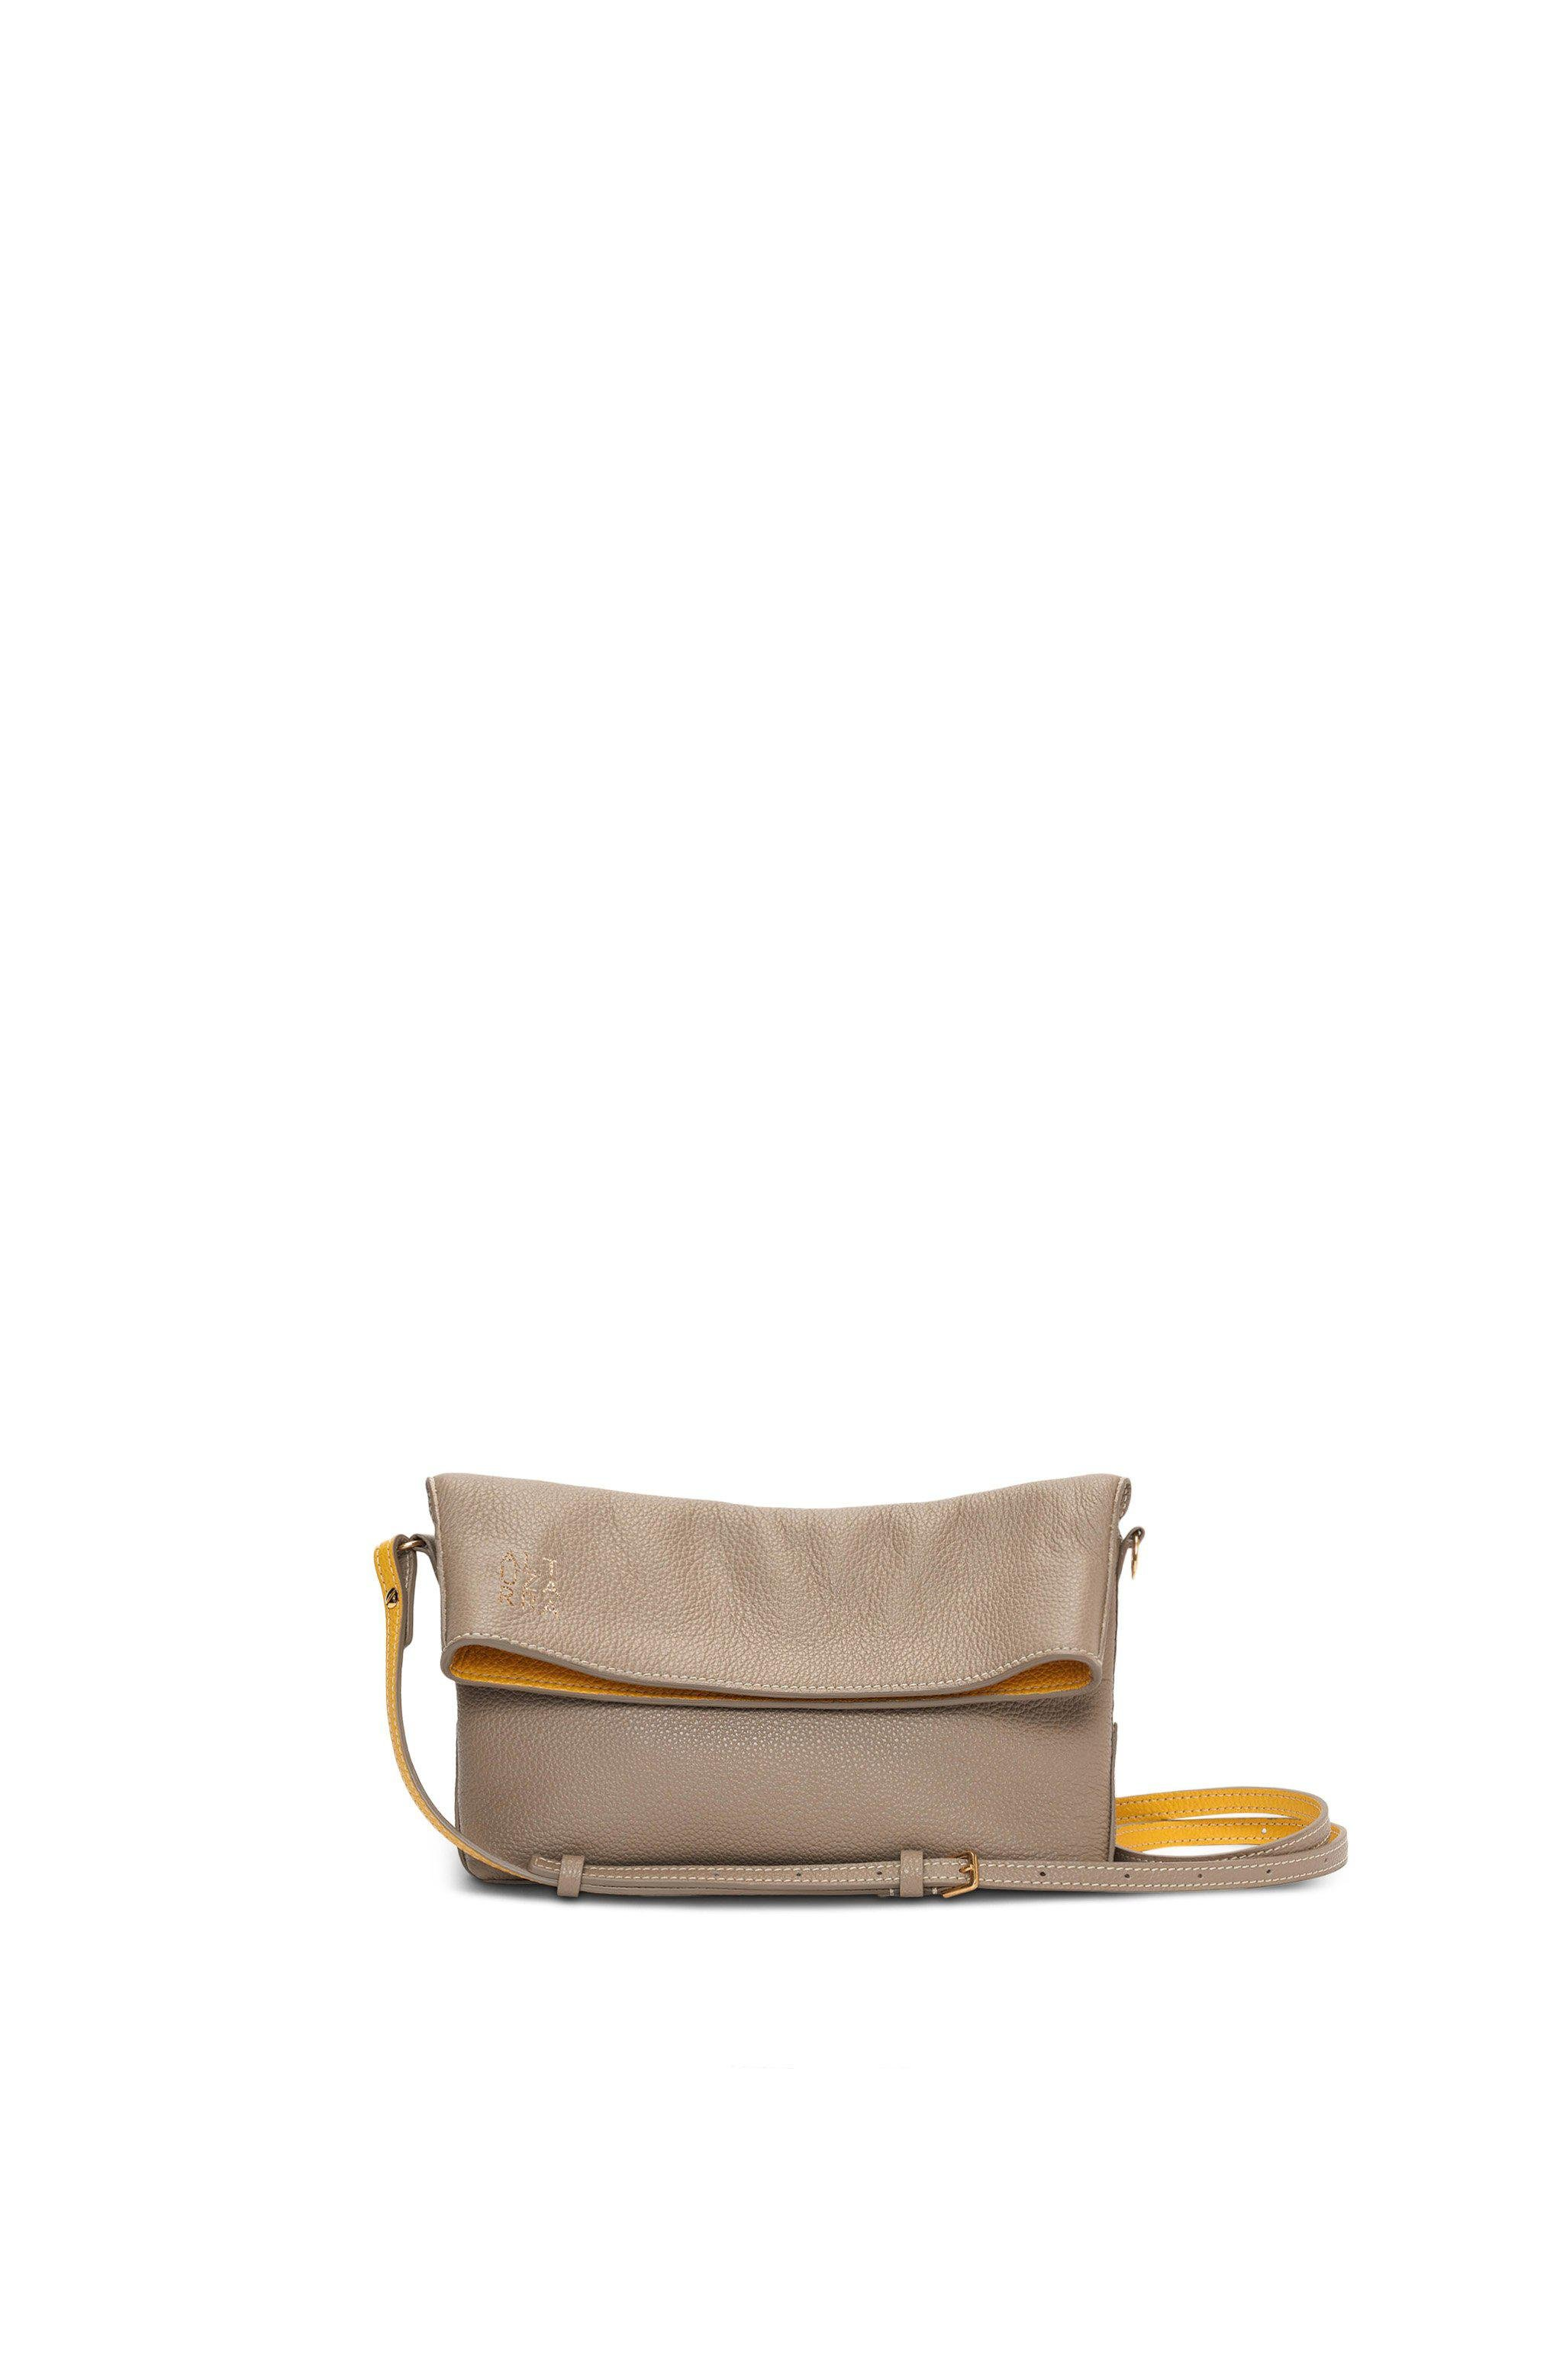 'Duo Reversible' Clutch Small